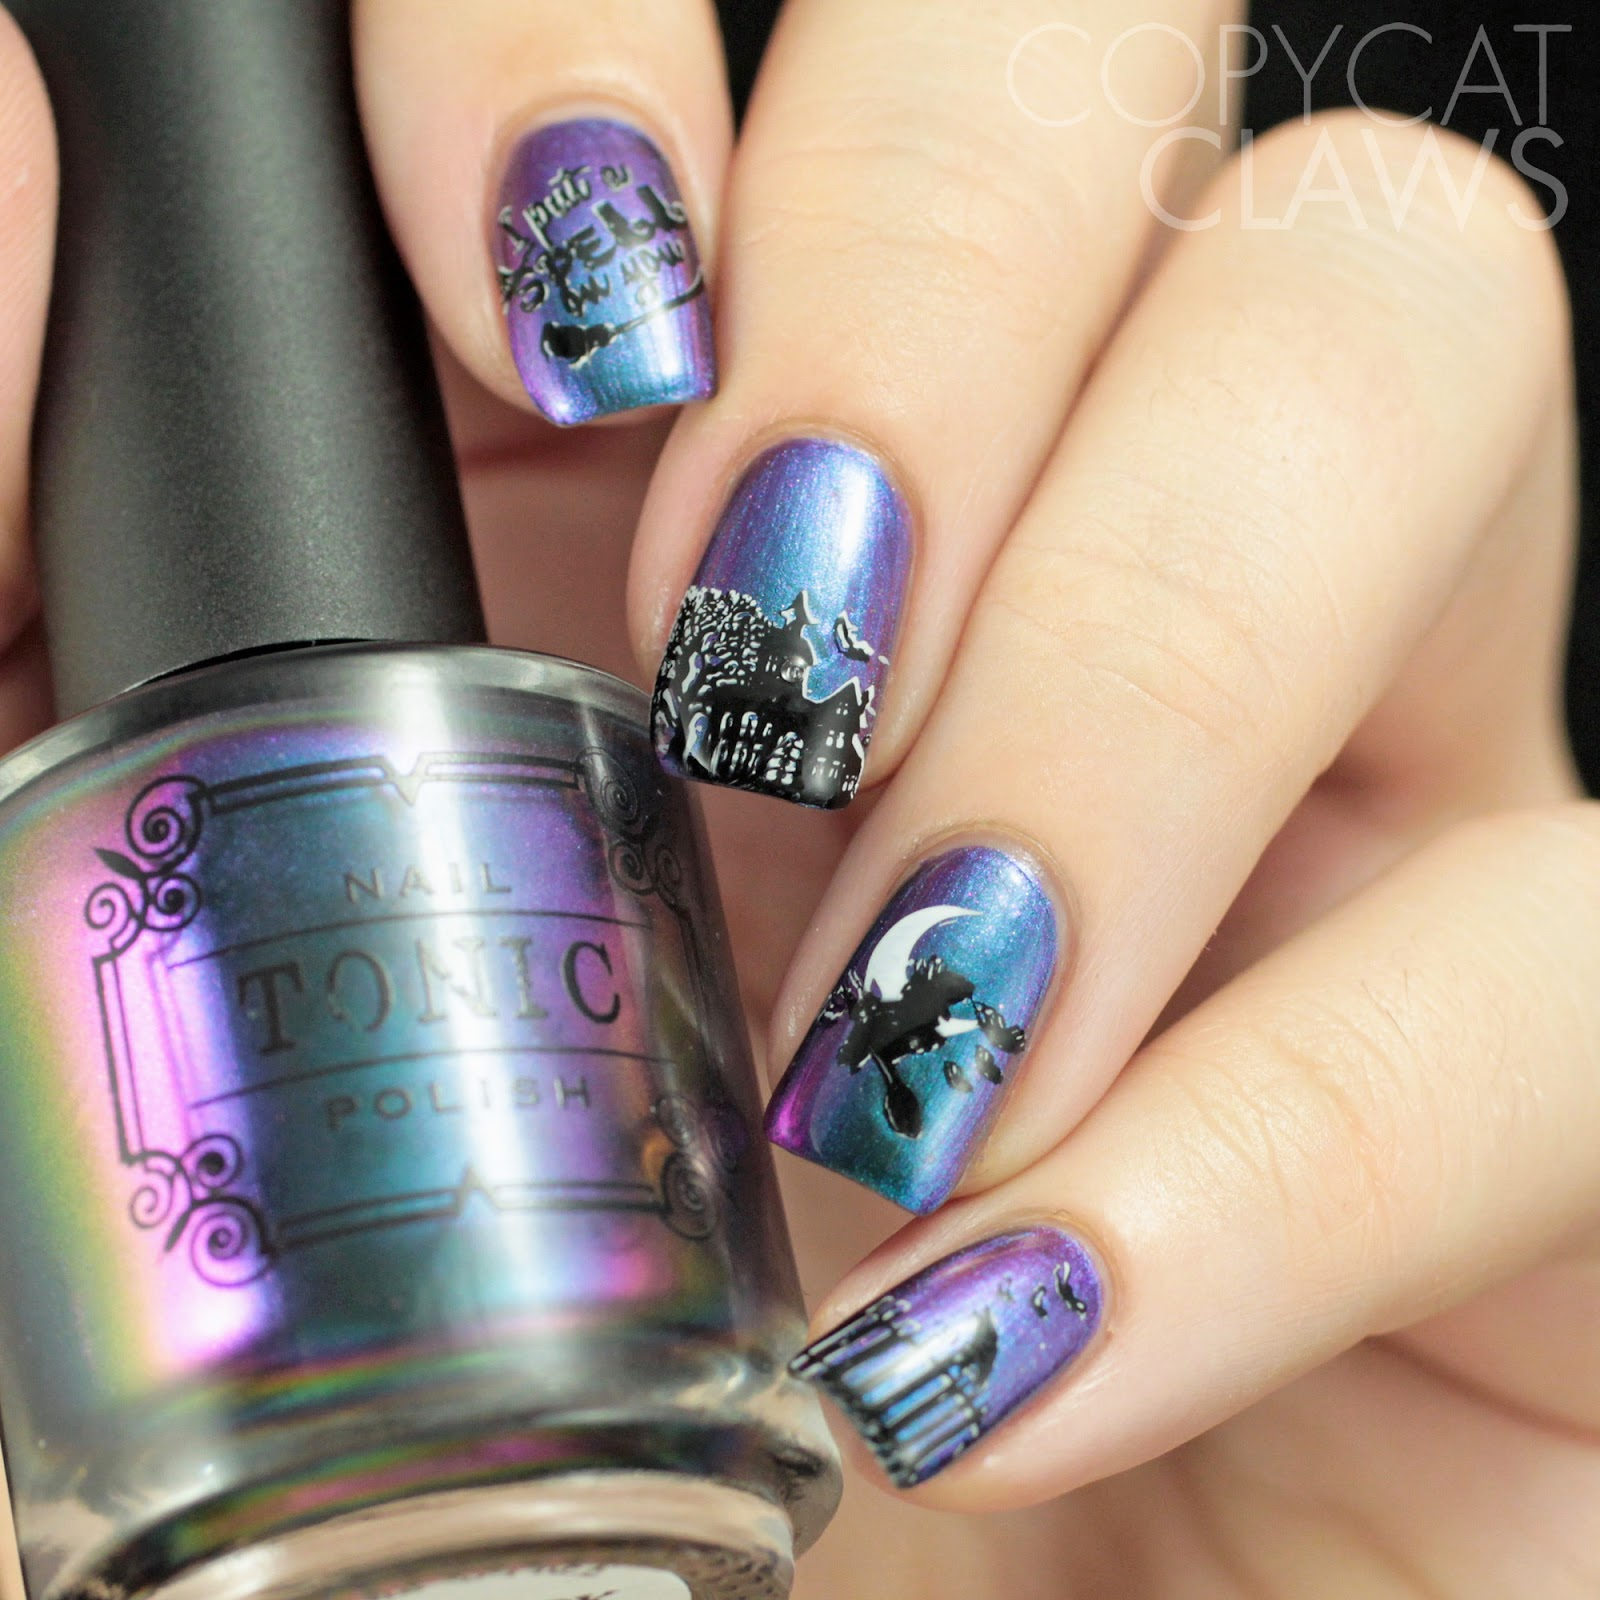 Copycat Claws: Lina Nail Art Supplies Spooklicious 01 and 02 Review